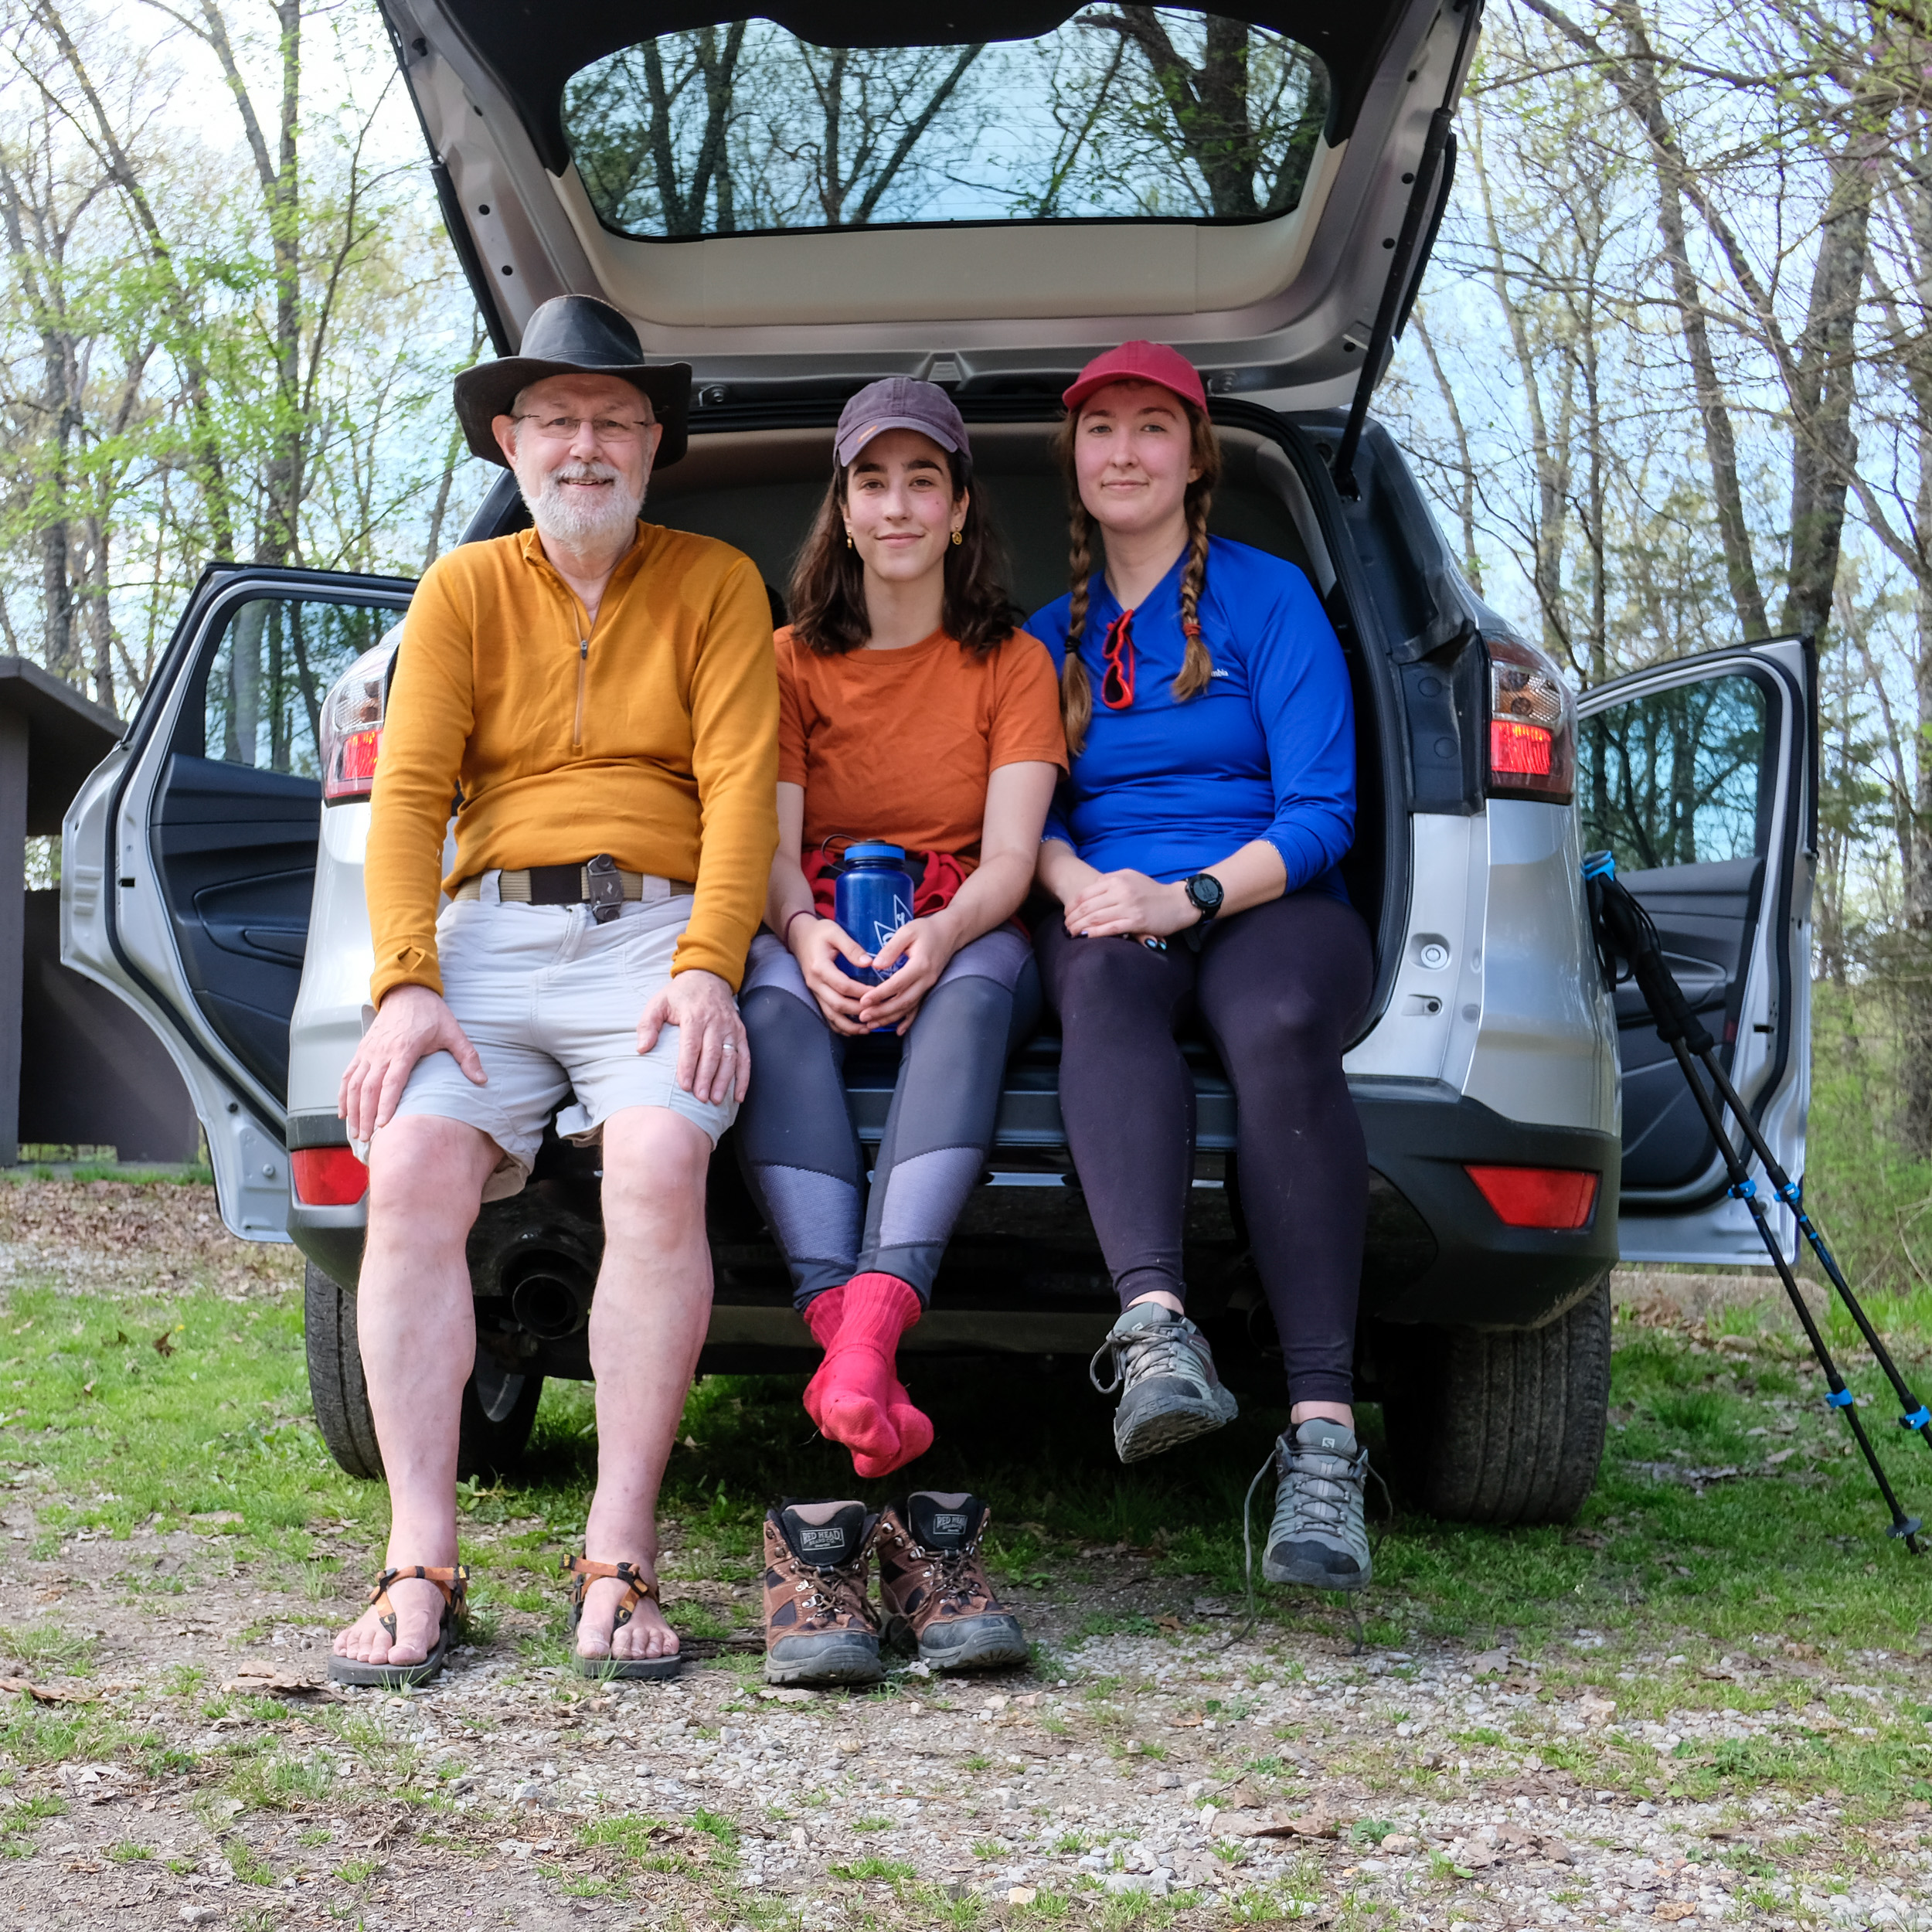 Photograph of Gary Allman with step-daughters Katie and Lanie. Piney Creek Wilderness, Missouri. April 2021.